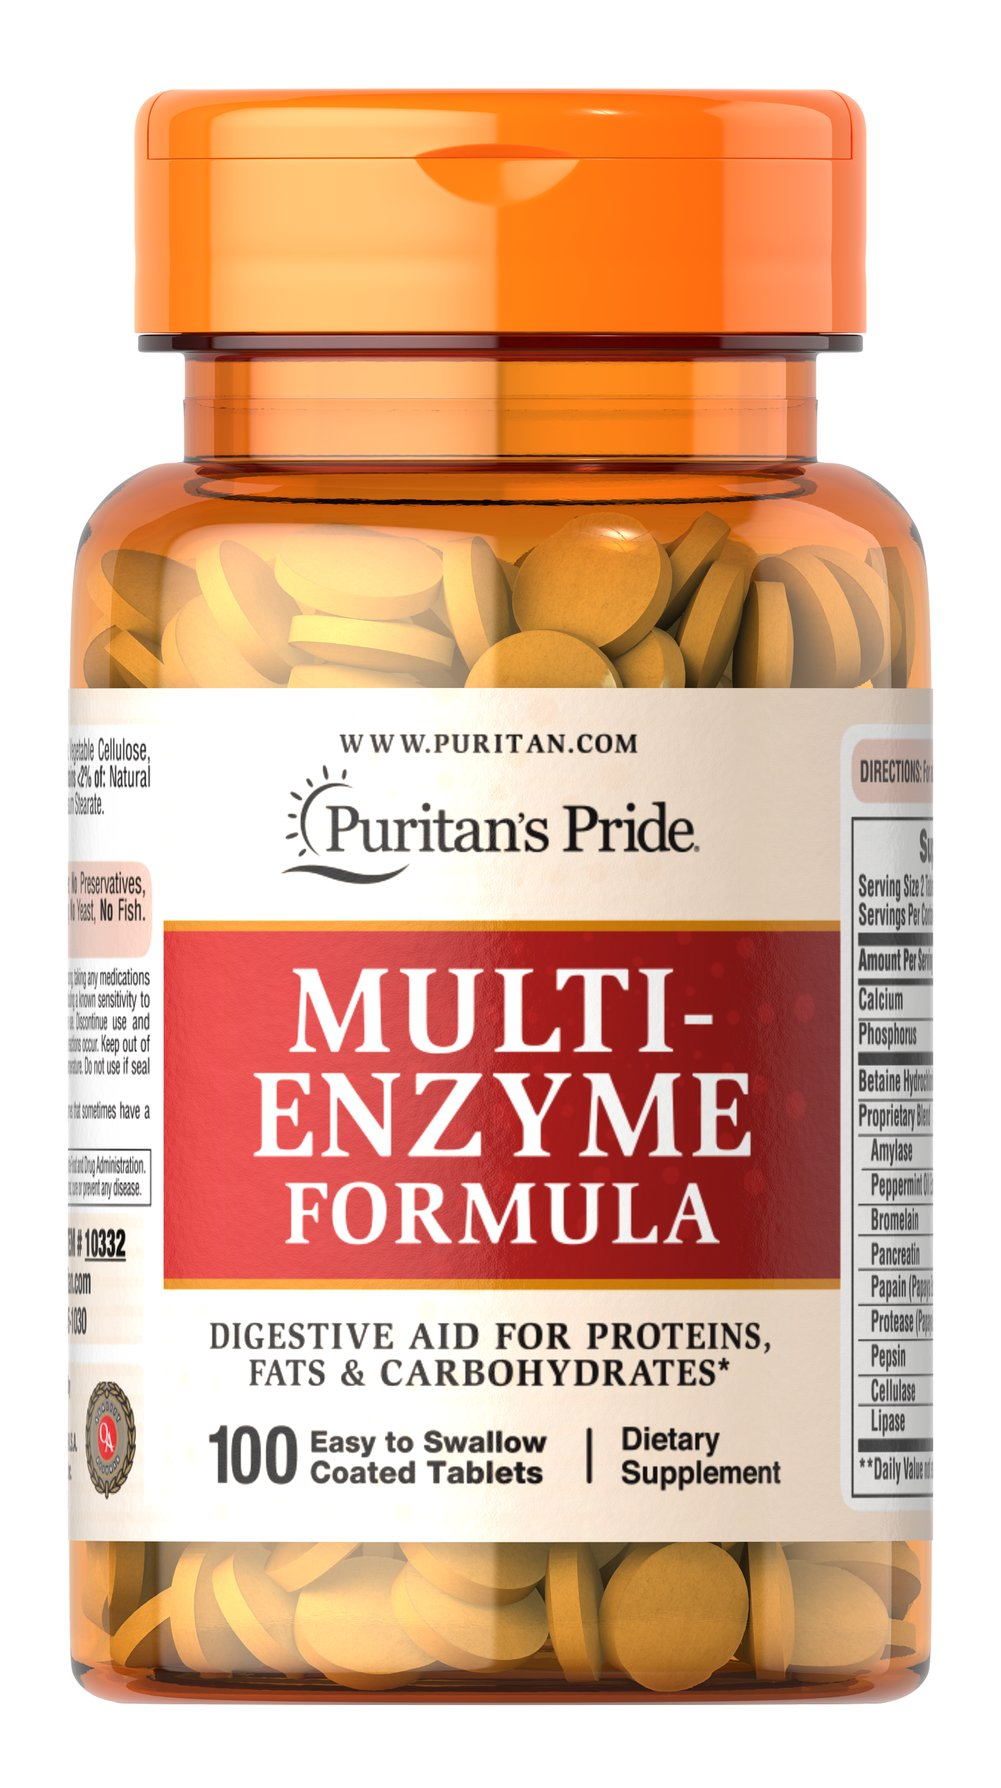 Multi Enzyme <p>Digestive aid for proteins, fats and carbohydrates.** Ingredients include enzymes that can help make nutrients available for the body's energy needs, cell growth and other vital functions.** This product is coated for ease of swallowing.</p>  100 Tablets  $14.39